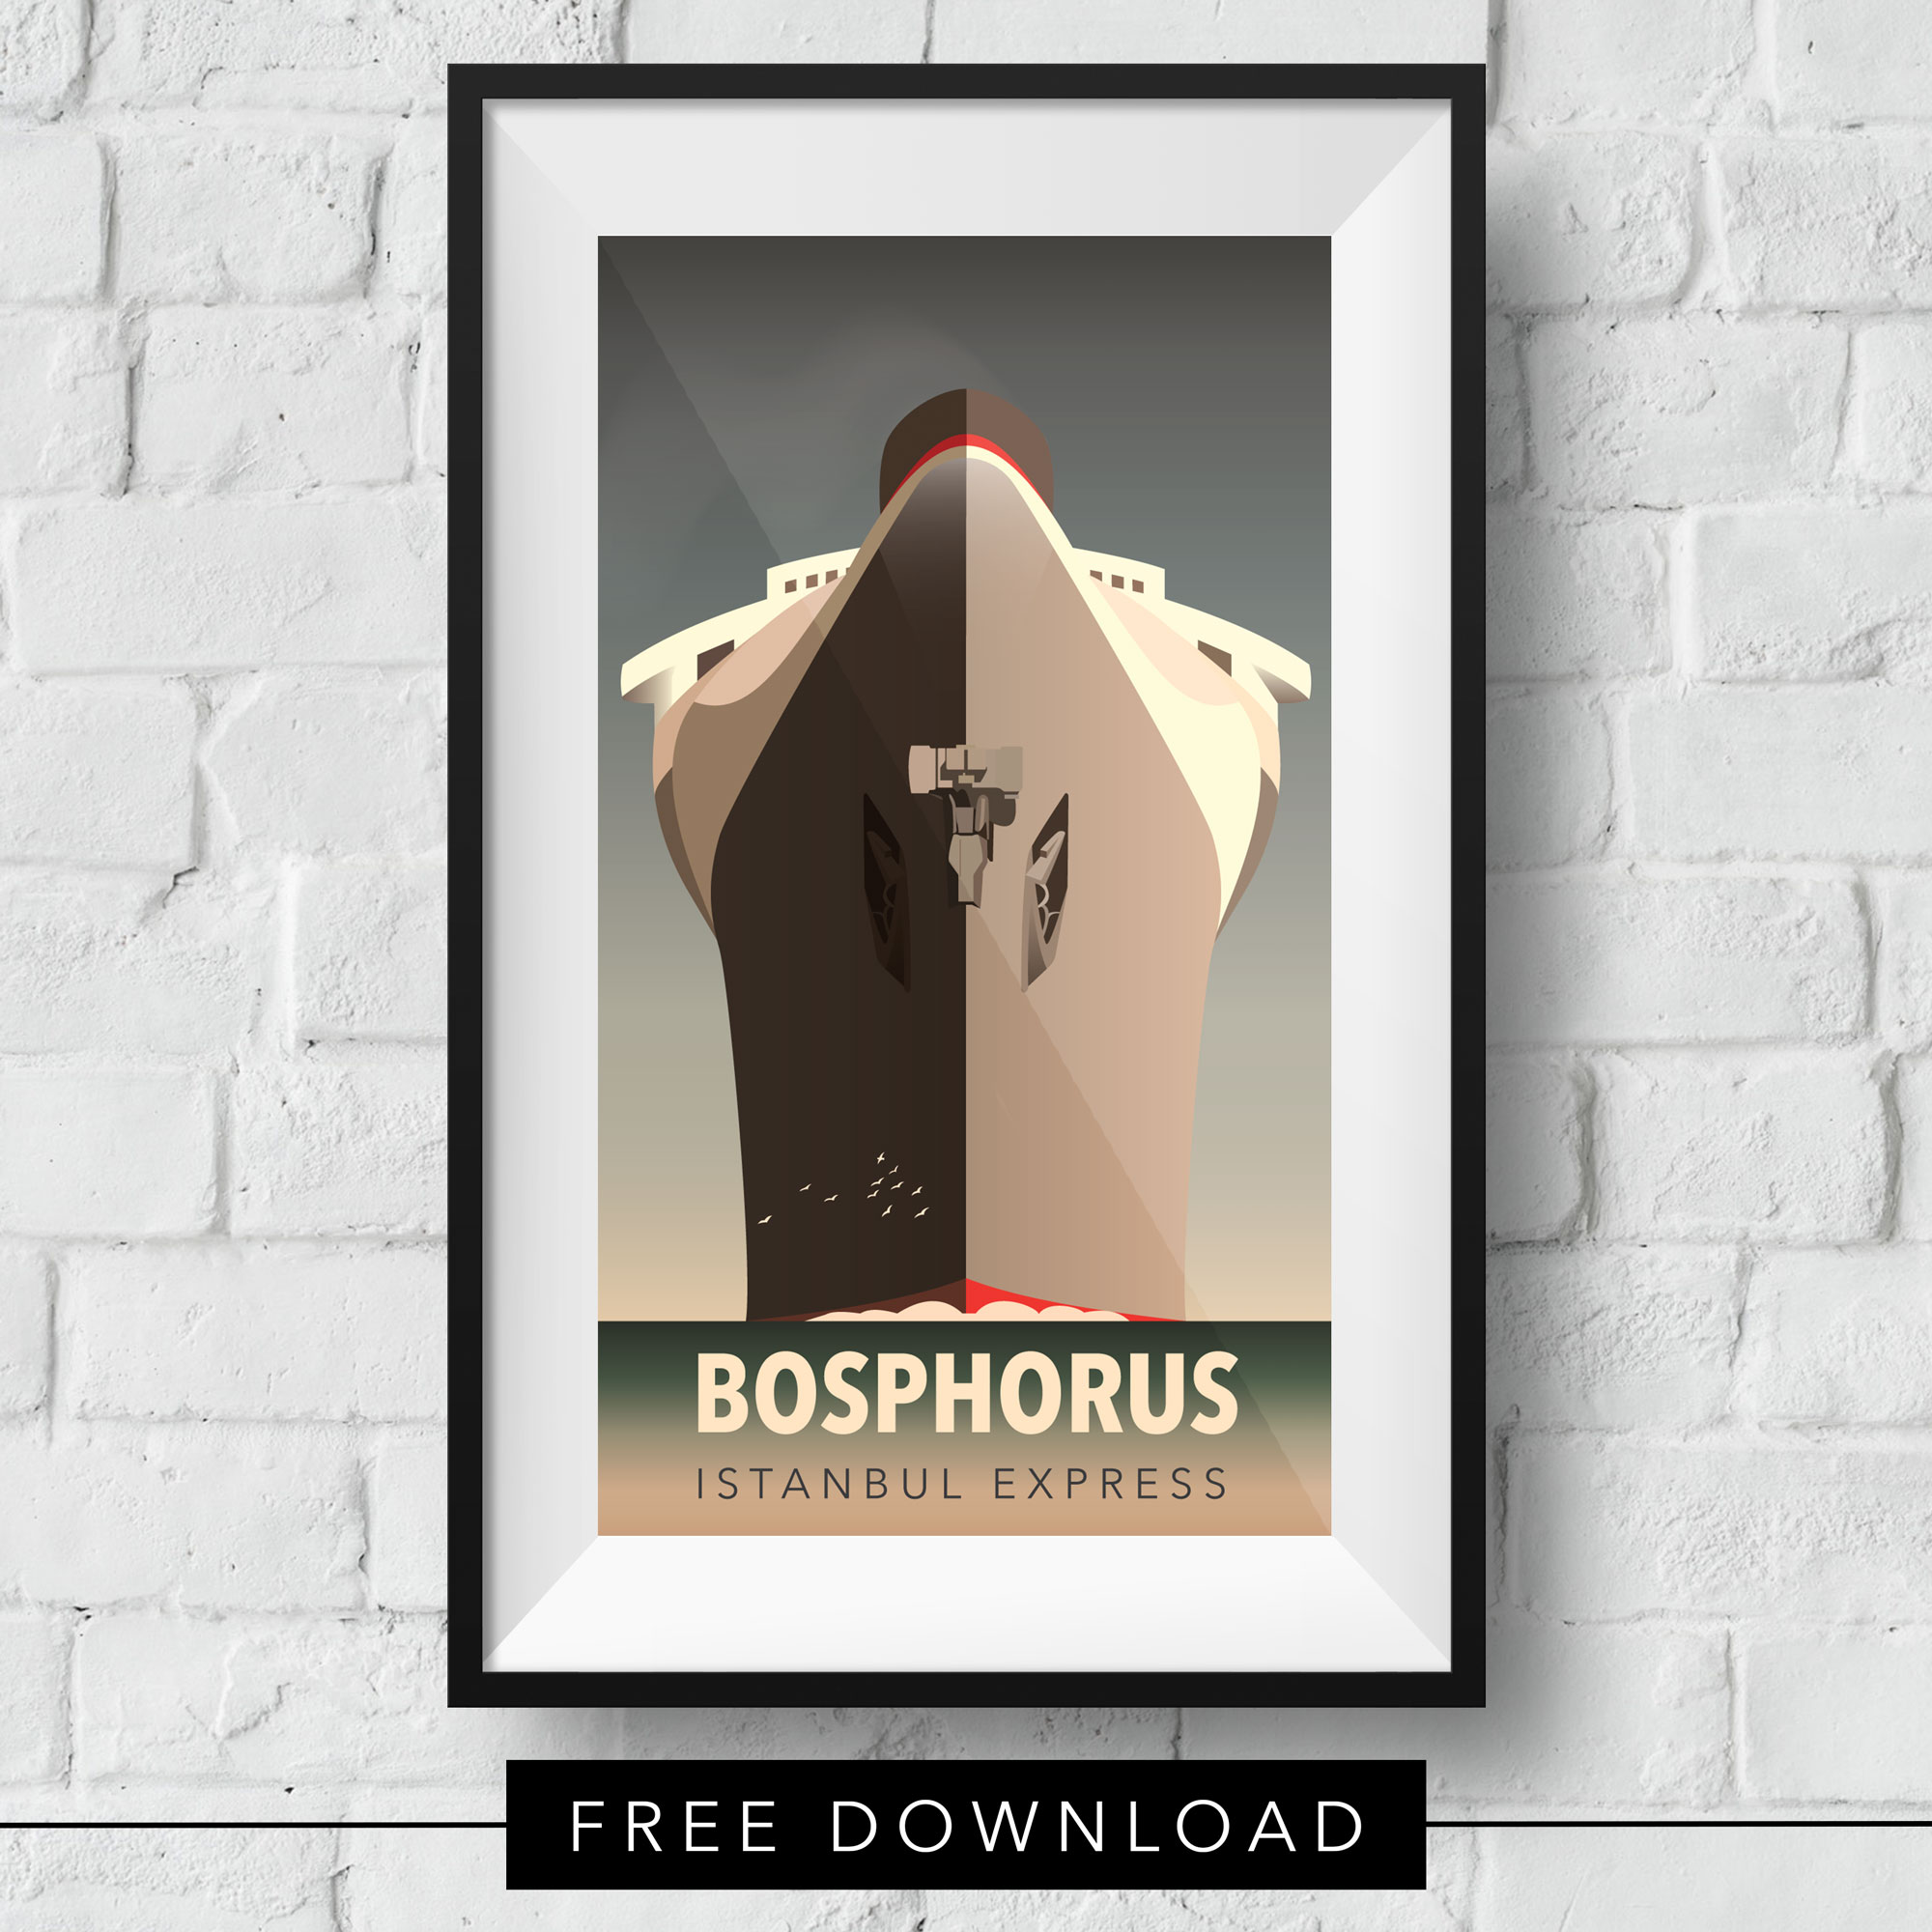 bosphorus-express-free-download